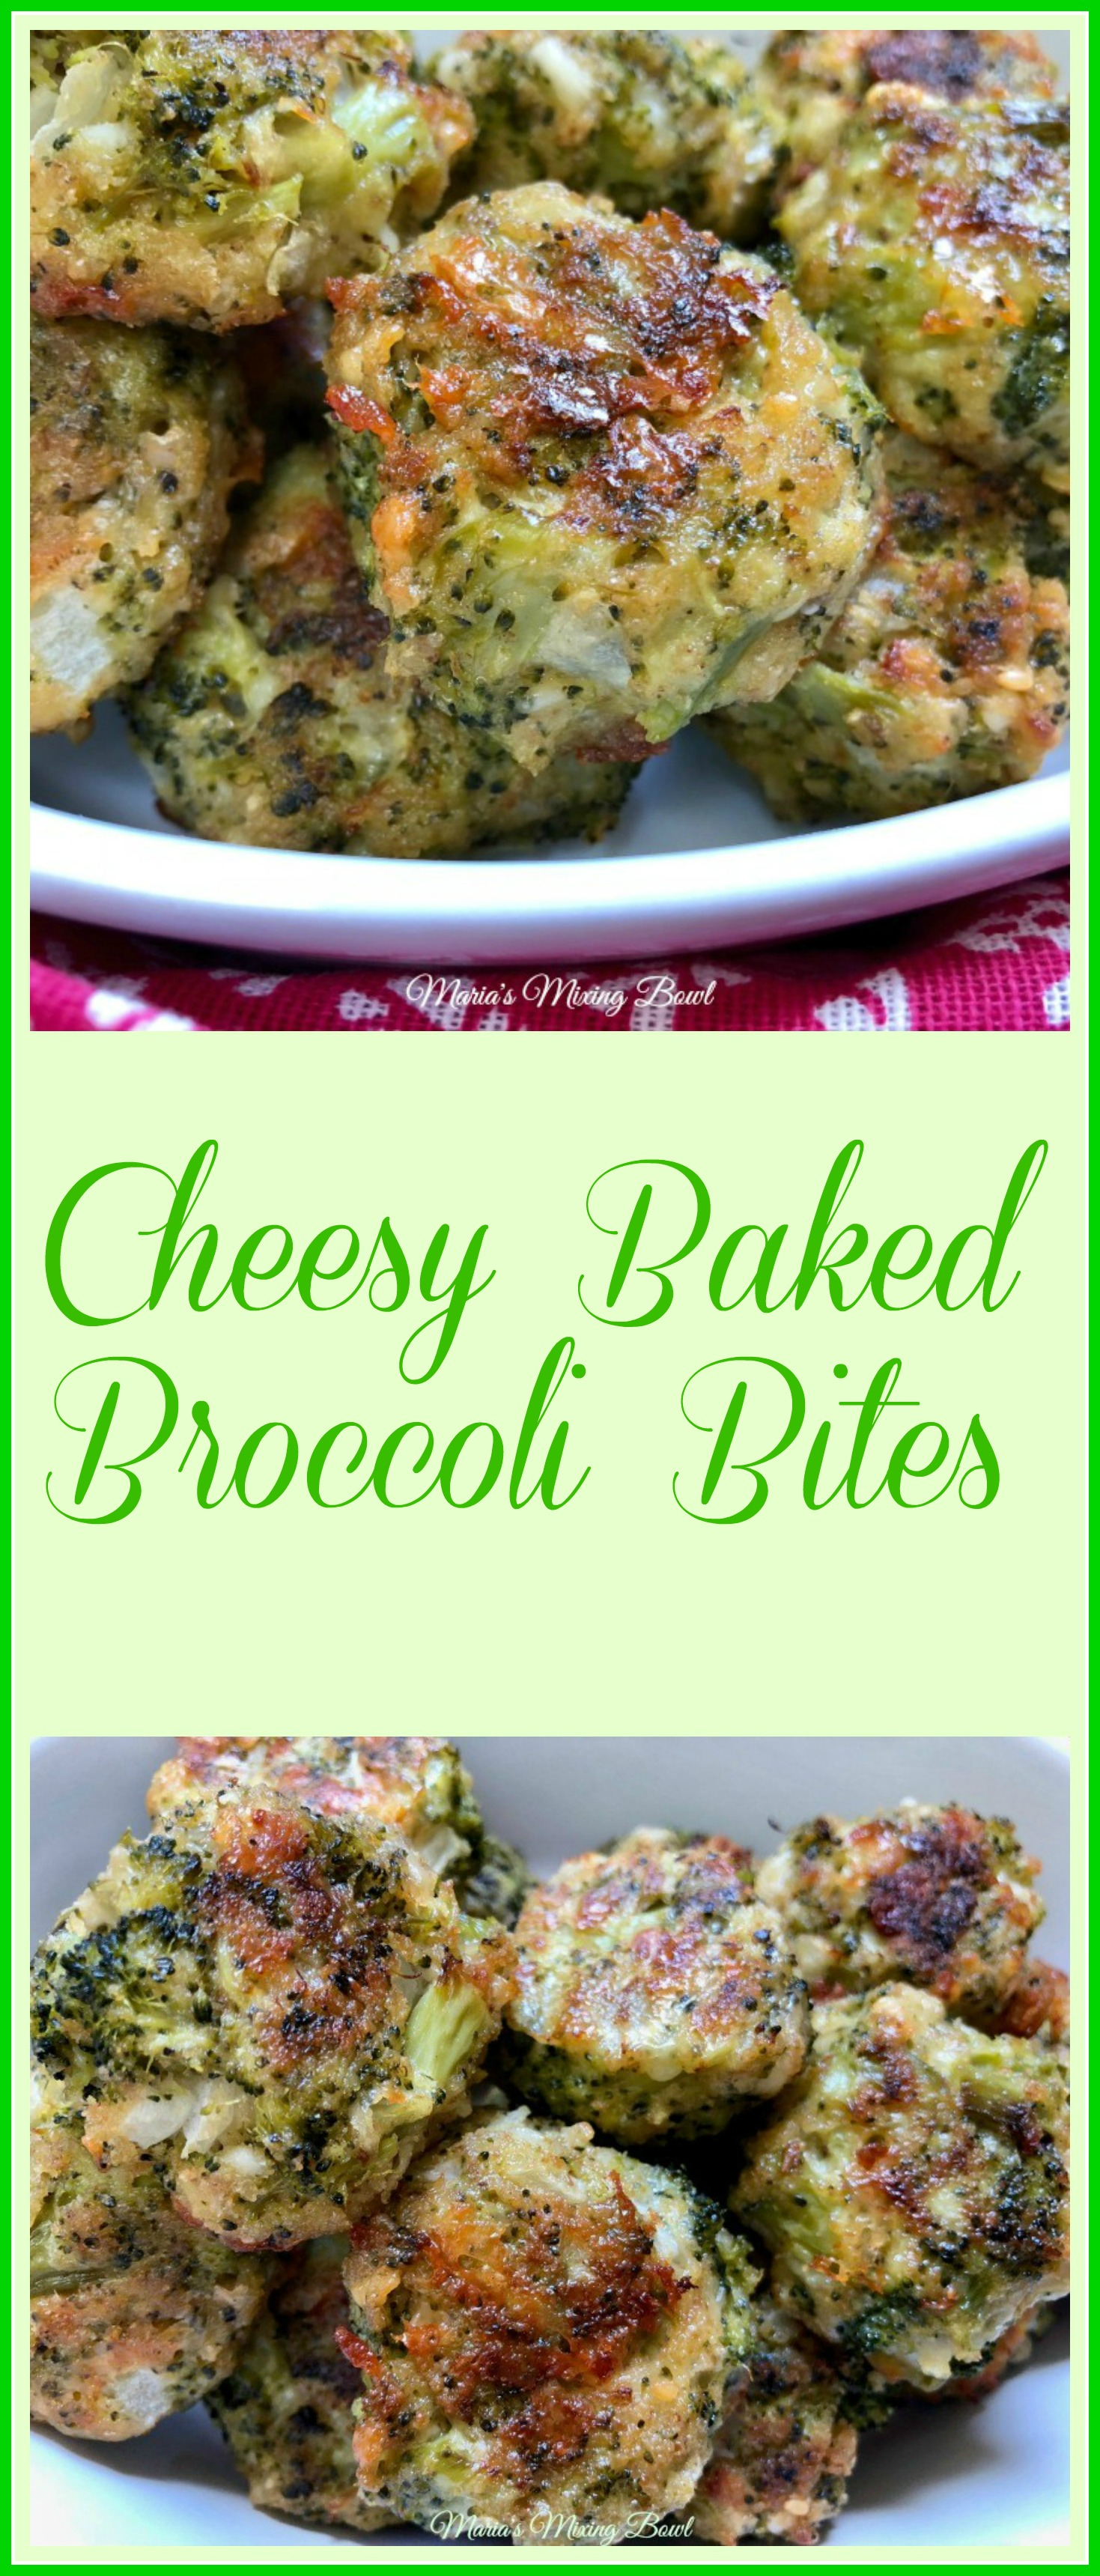 Cheesy Baked Broccoli Bites - So simple to make. Everyone will love these cheesy baked broccoli bites! Great appetizer and snack.